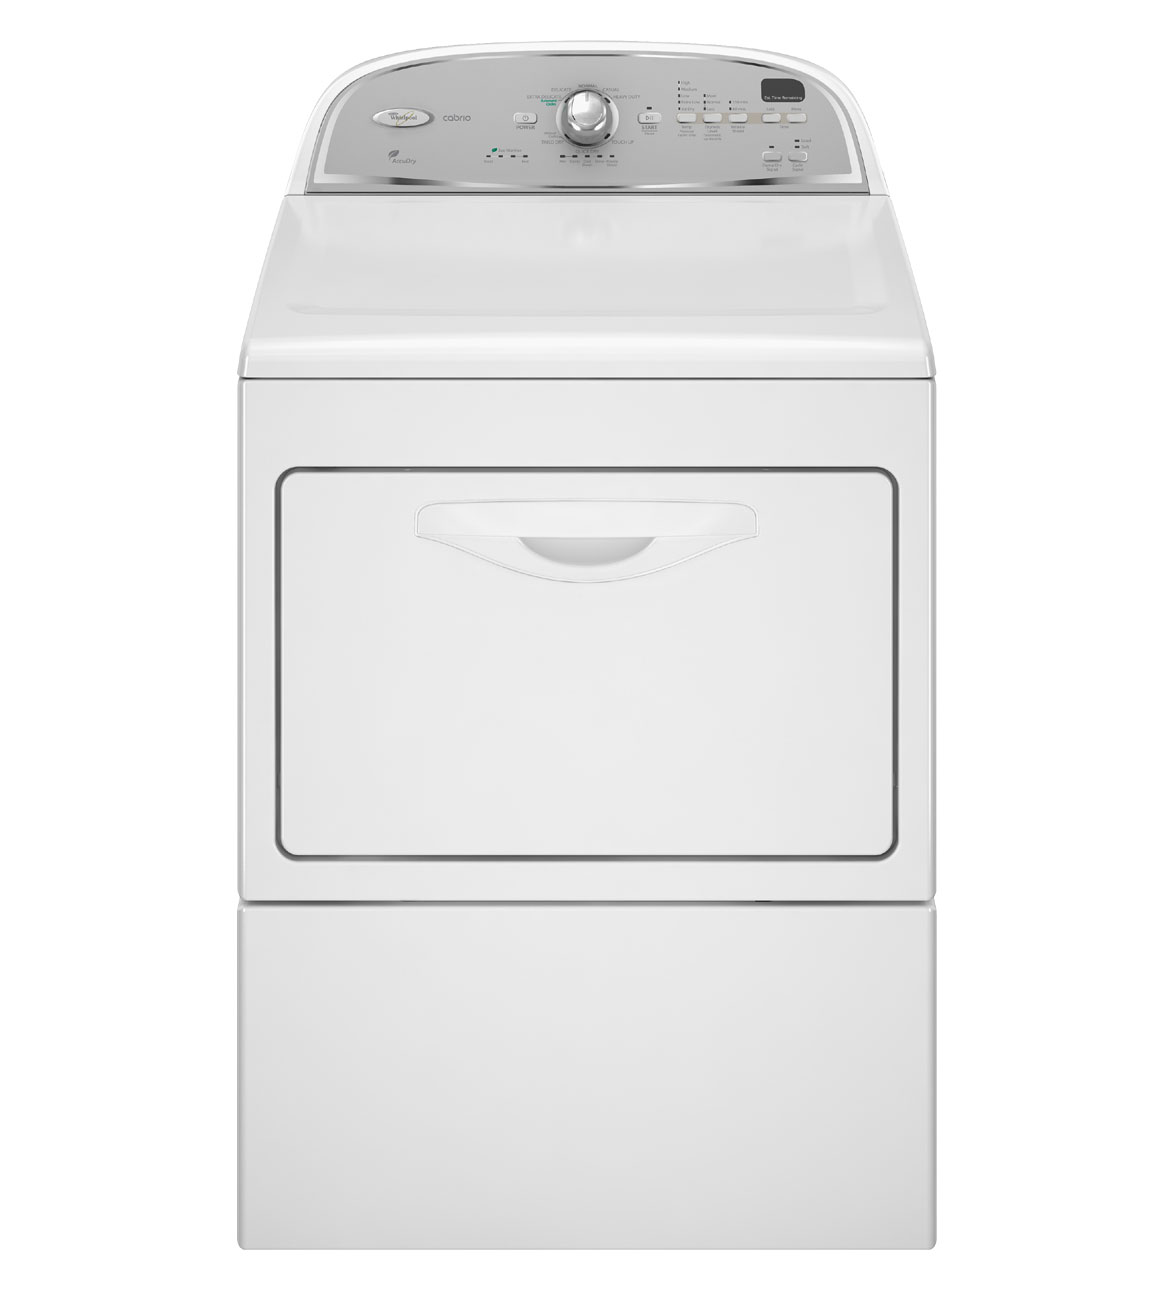 Review of Whirlpool Cabrio 7.4 cu. ft. Electric Dryer in White (Model: WED5600XW)